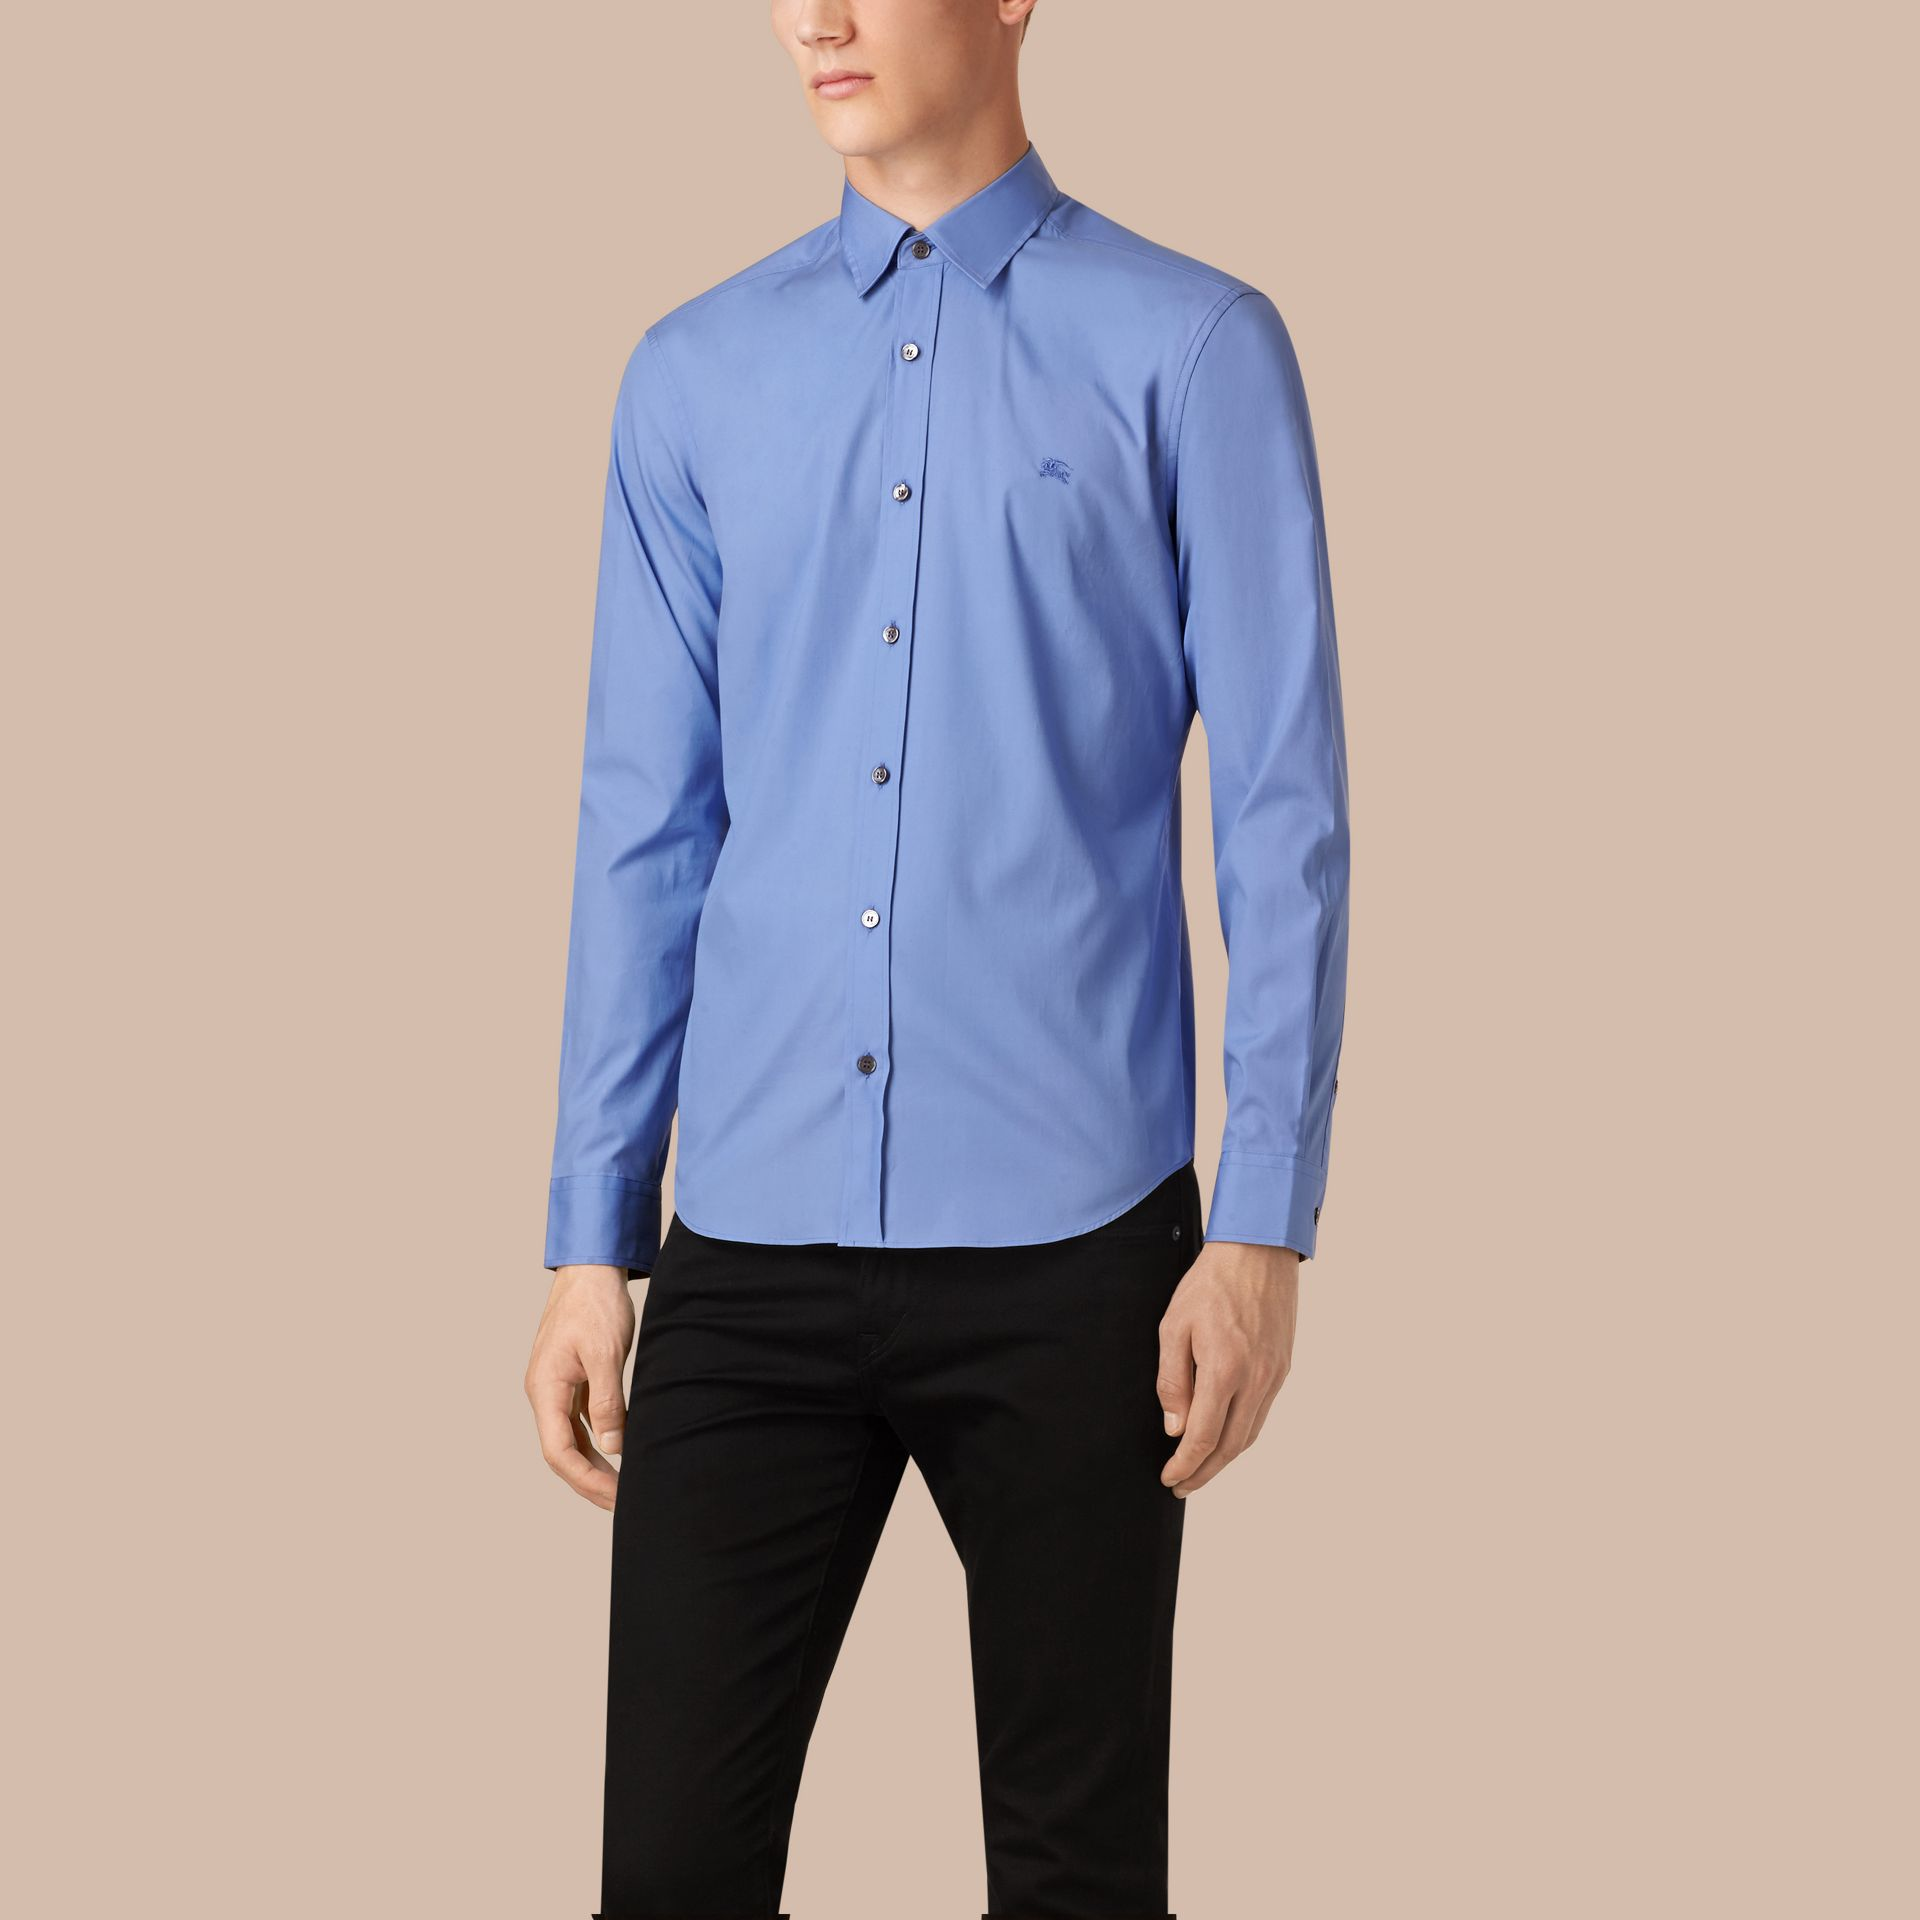 Hydrangea blue Check Detail Stretch Cotton Poplin Shirt Hydrangea Blue - gallery image 1